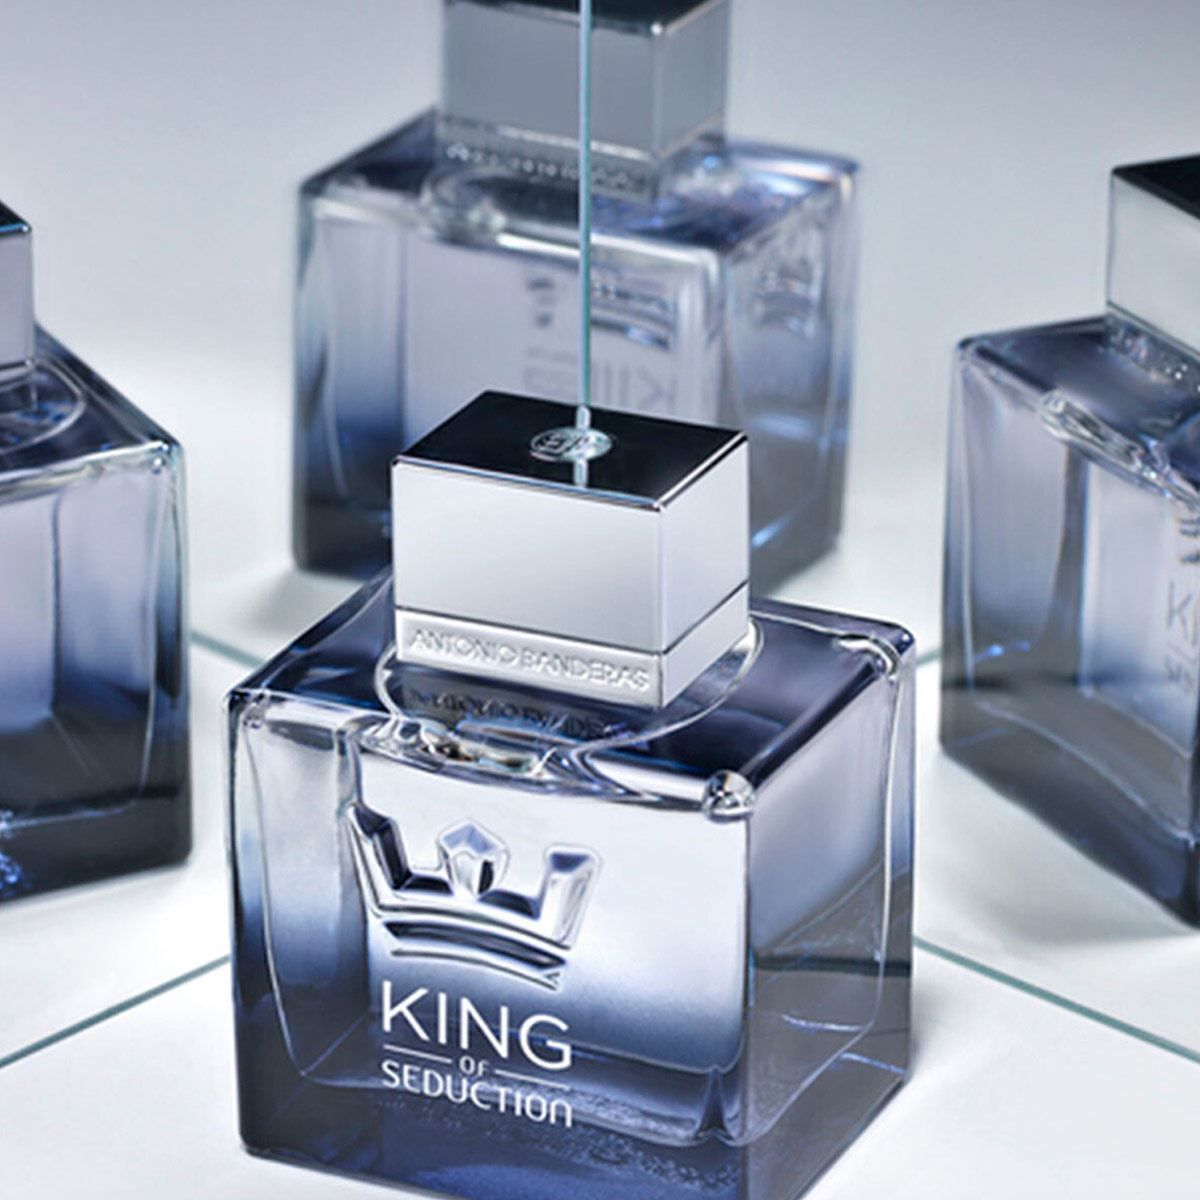 Set para caballero, Antonio Banderas, King of seduction, EDT 100ML + DESODORANTE 150ML